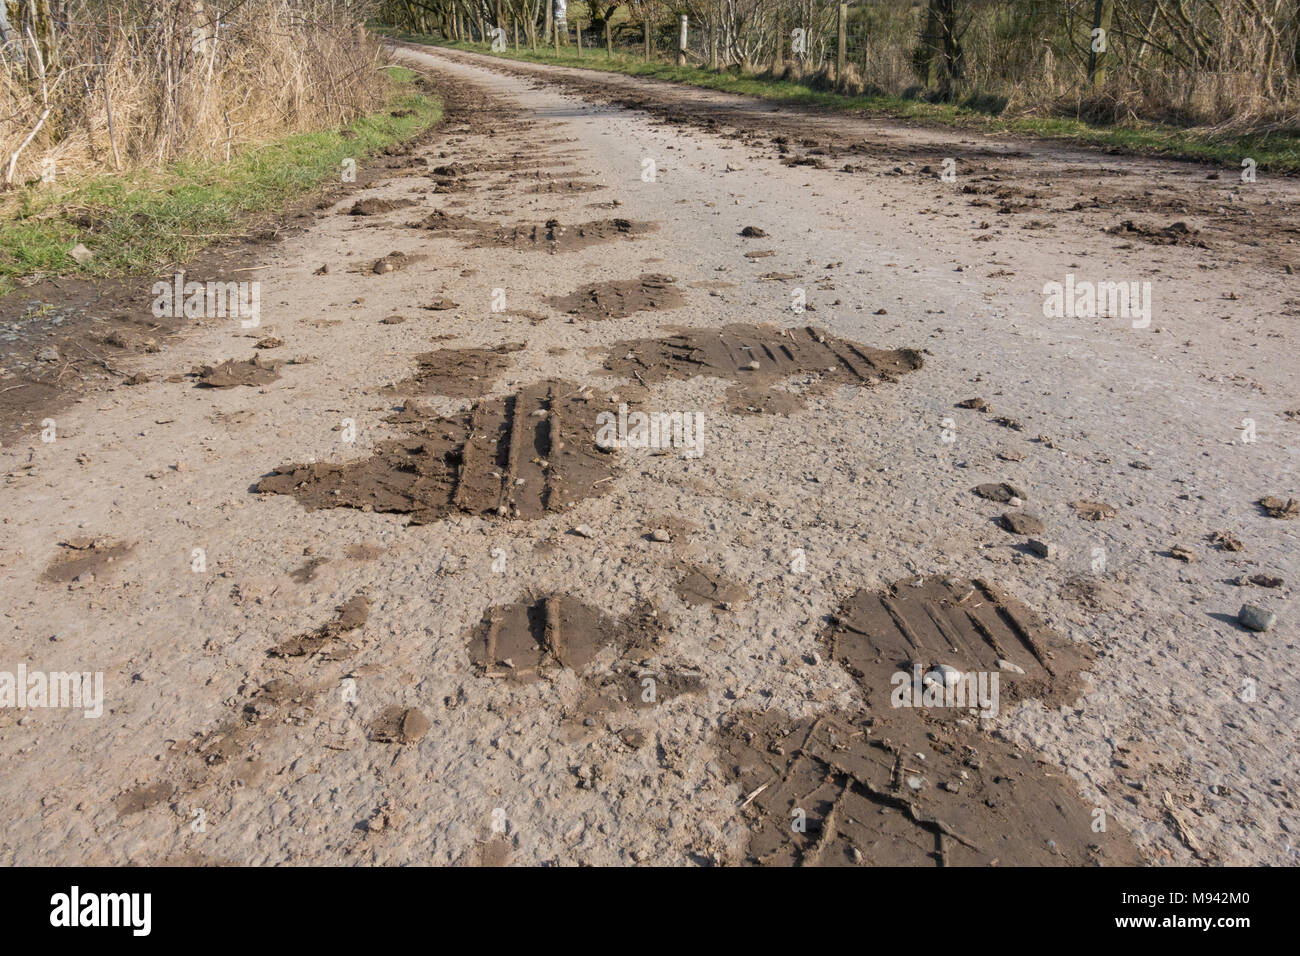 mud on rural country road - uk - Stock Image